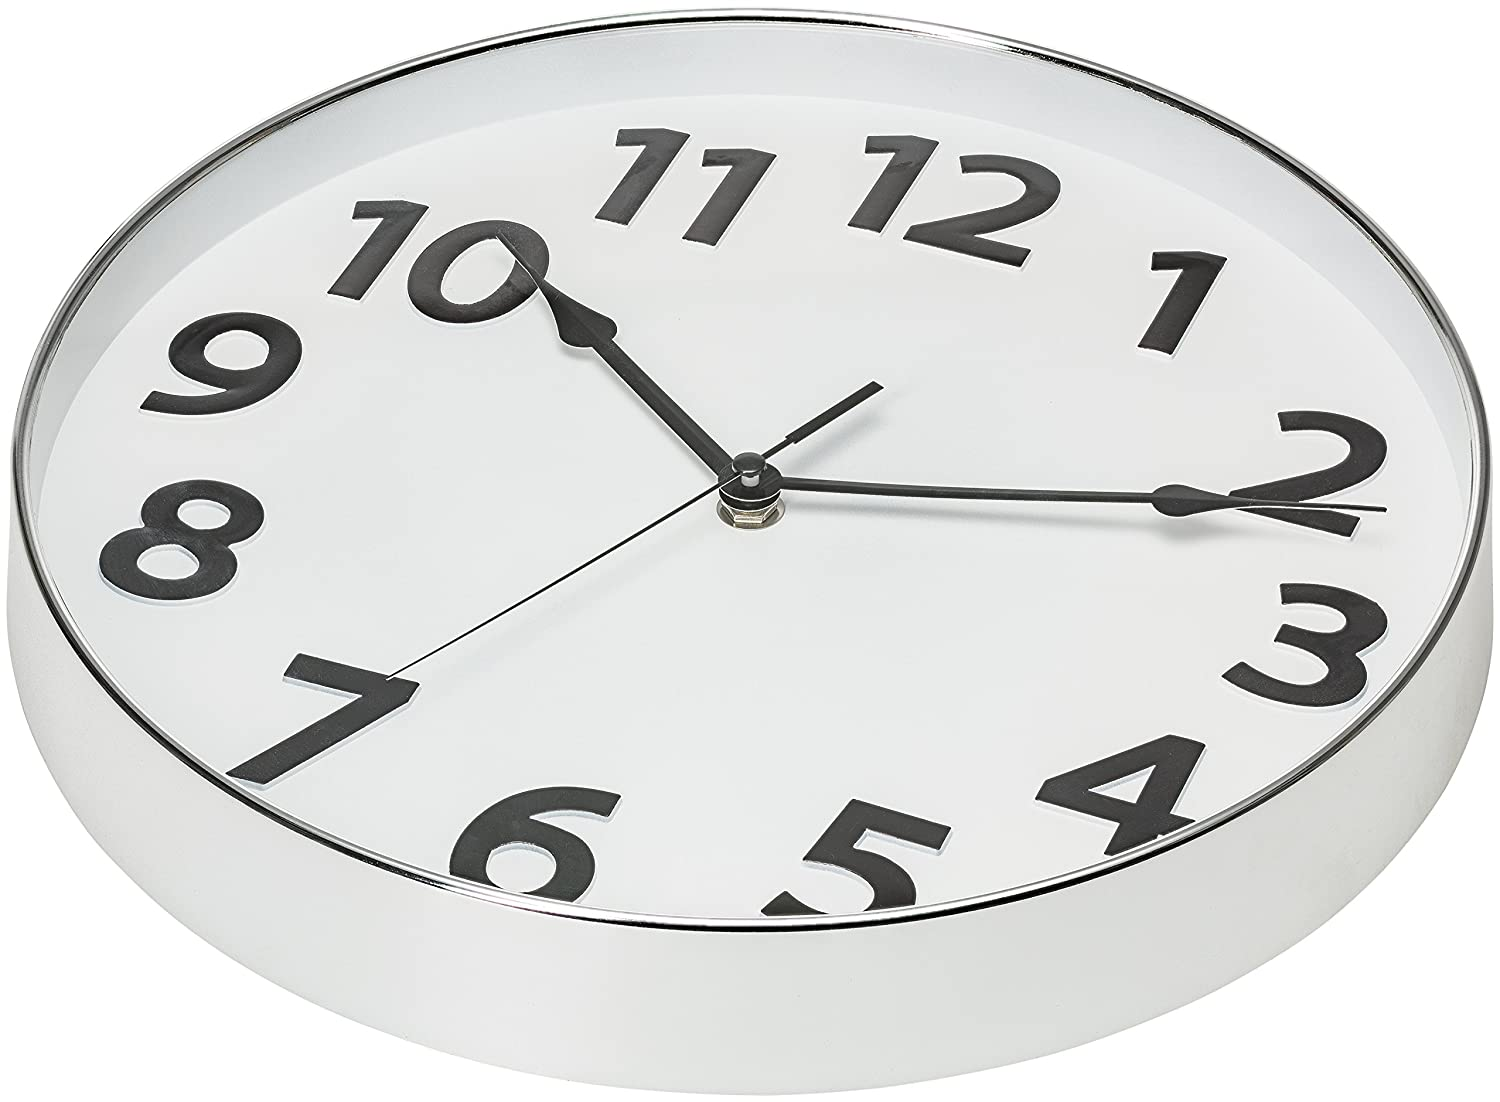 Sweep Movement 04061 12-Inch Silent Non Ticking Quality Quartz Battery Operated Round Home//Office//Classroom Modern Clock Silver Rim 3D Numbers Bernhard Products Large Silver and White Wall Clock